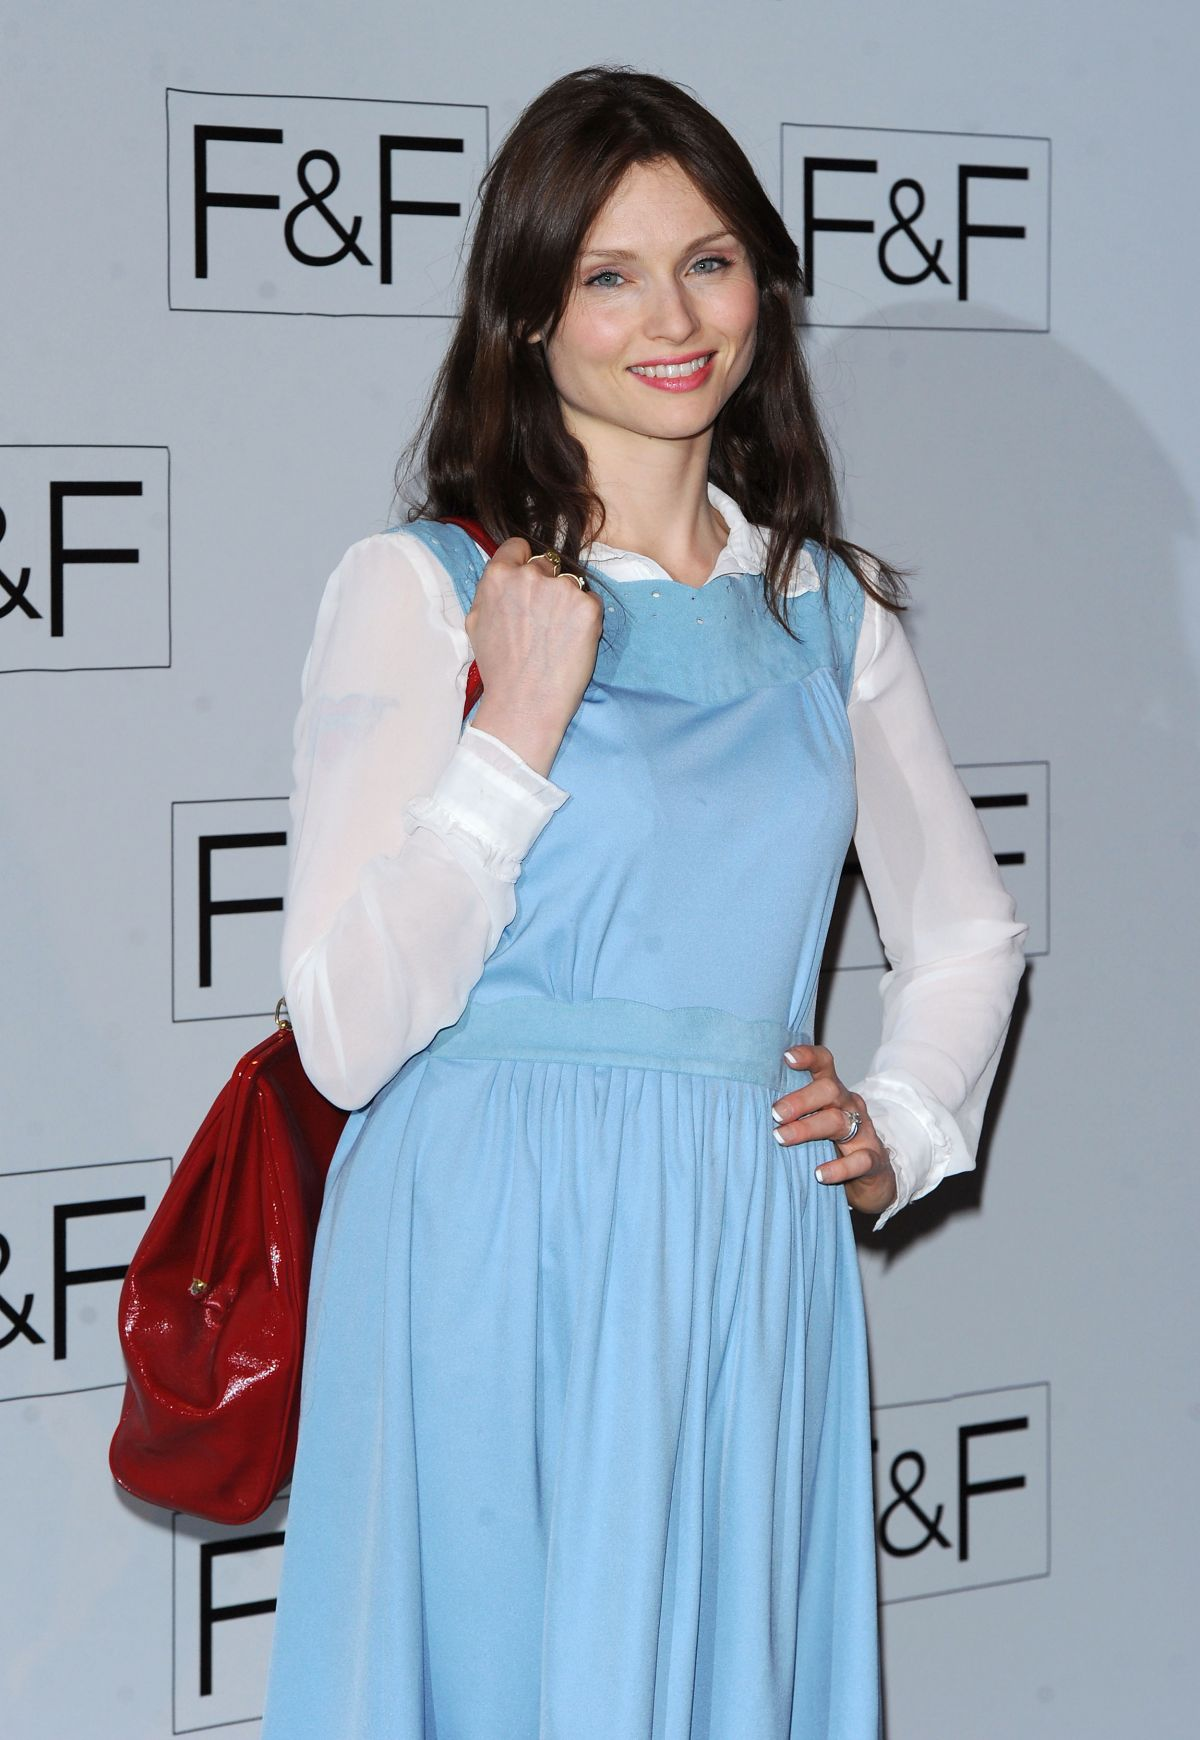 SOPHIE ELLIS-BEXTOR at F&F 2014 Fashion Show in London